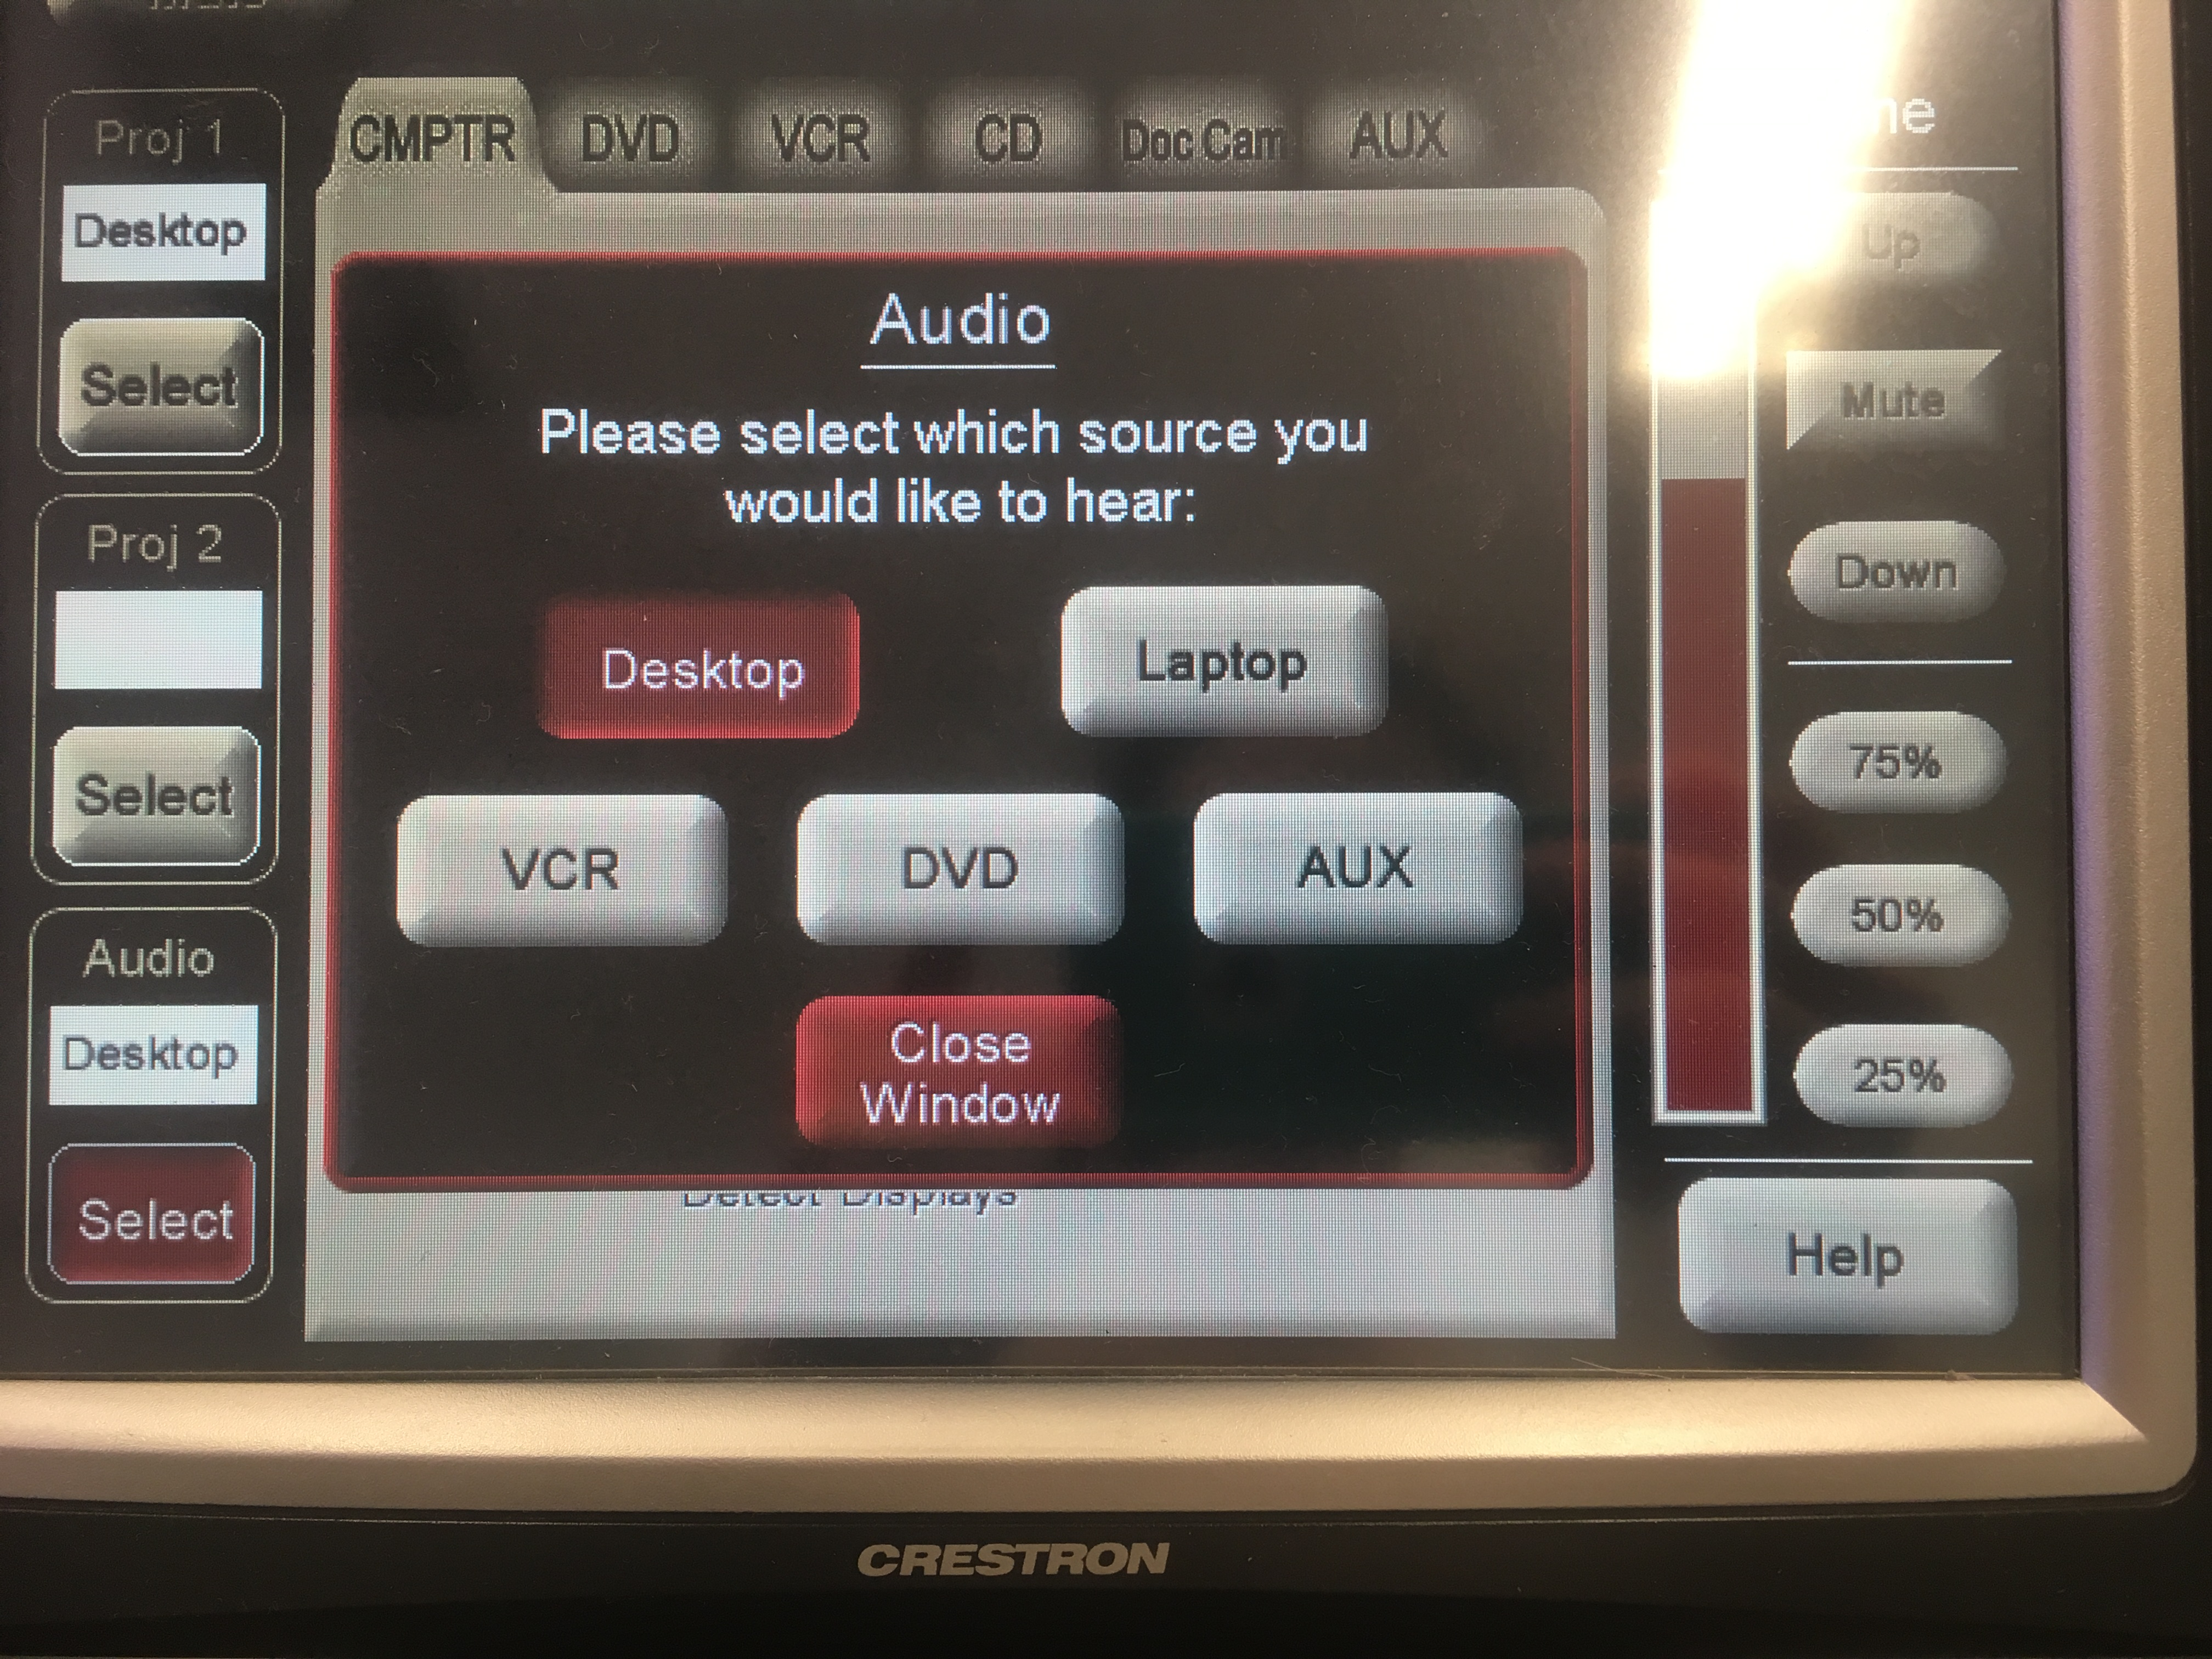 Photo of crestron control touch panel with computer tab active audio options for the projection system